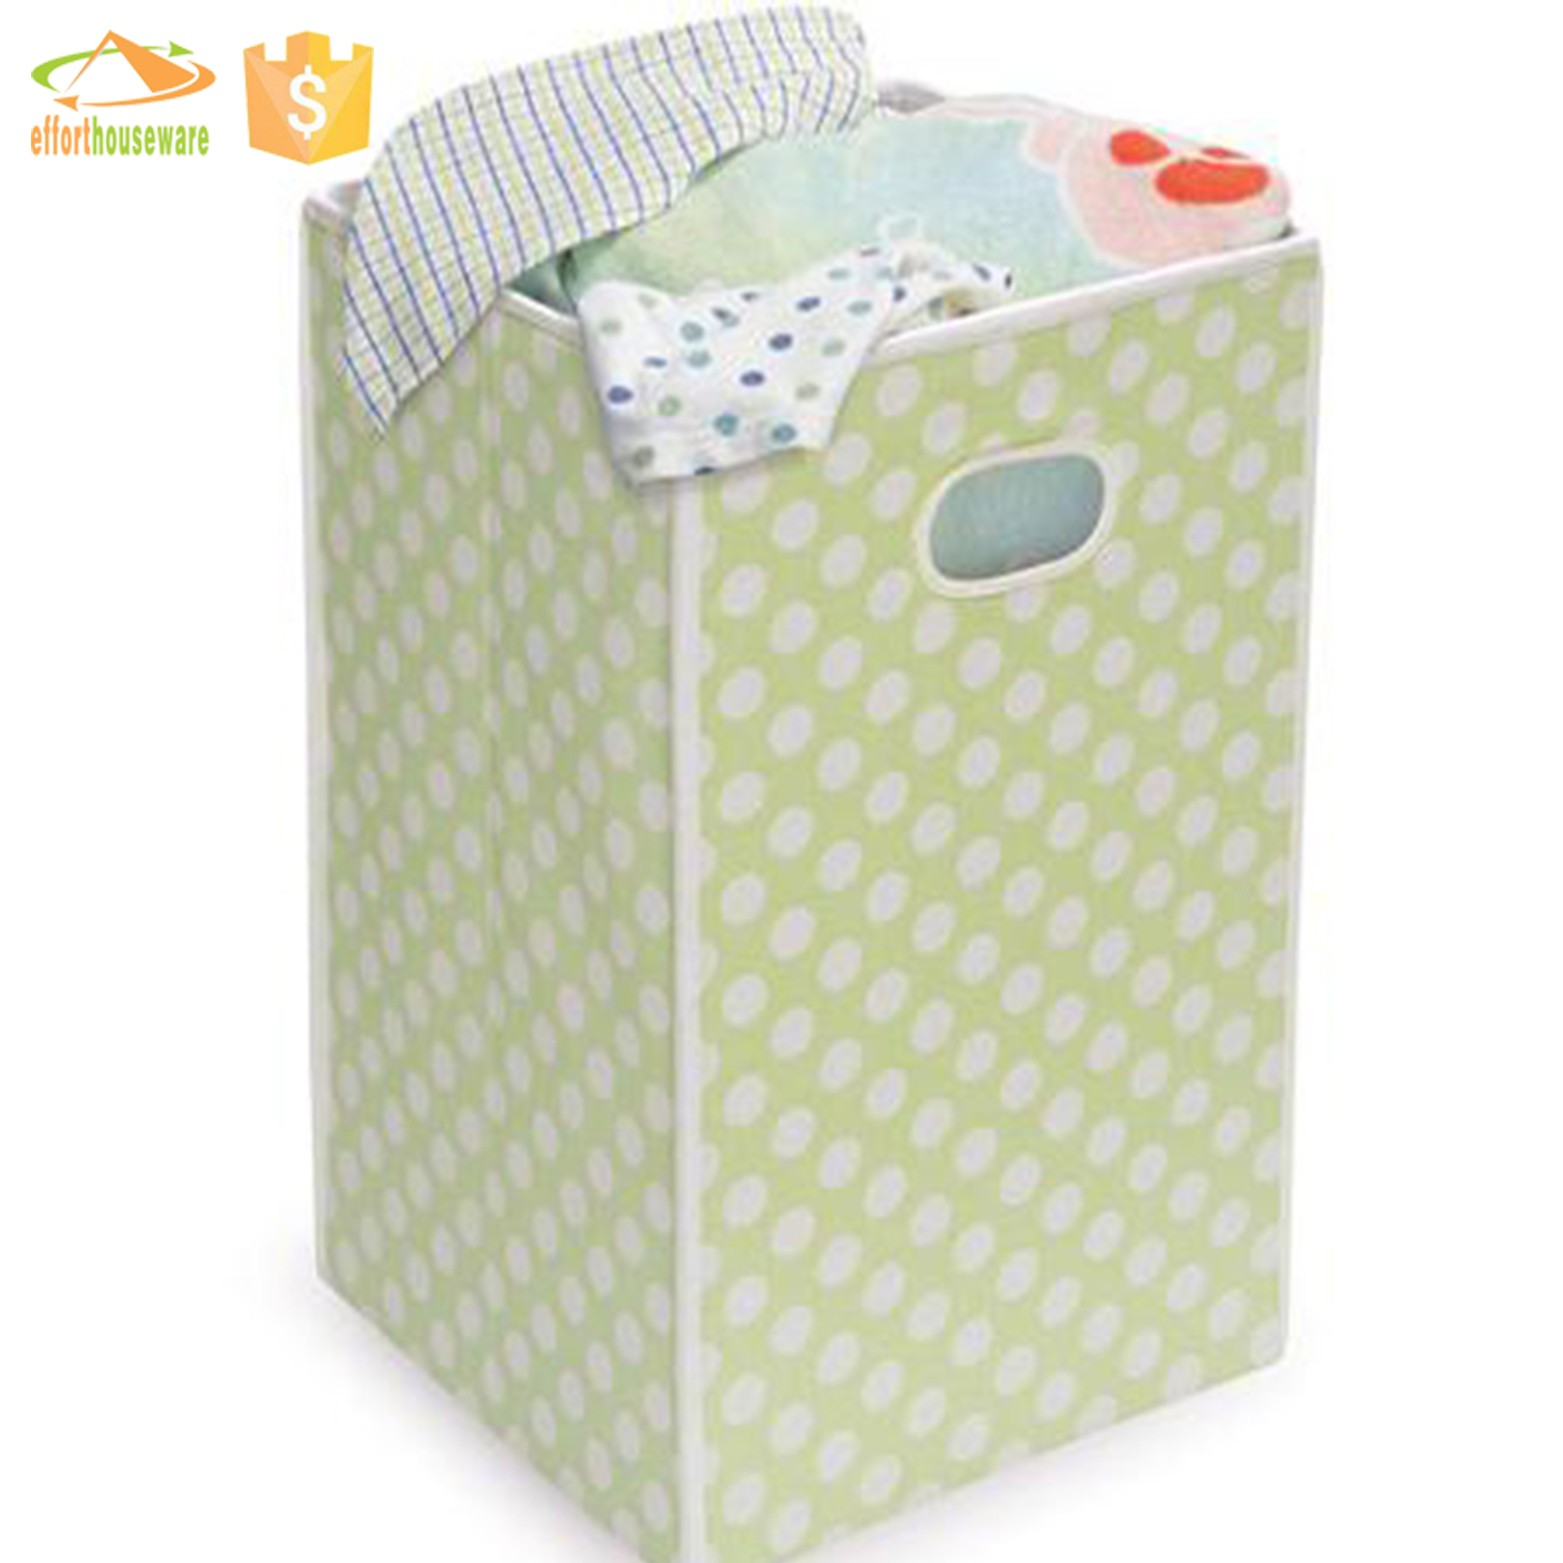 EFTSBY402 Fashion and Modern Household Canvas Folding laundry basket